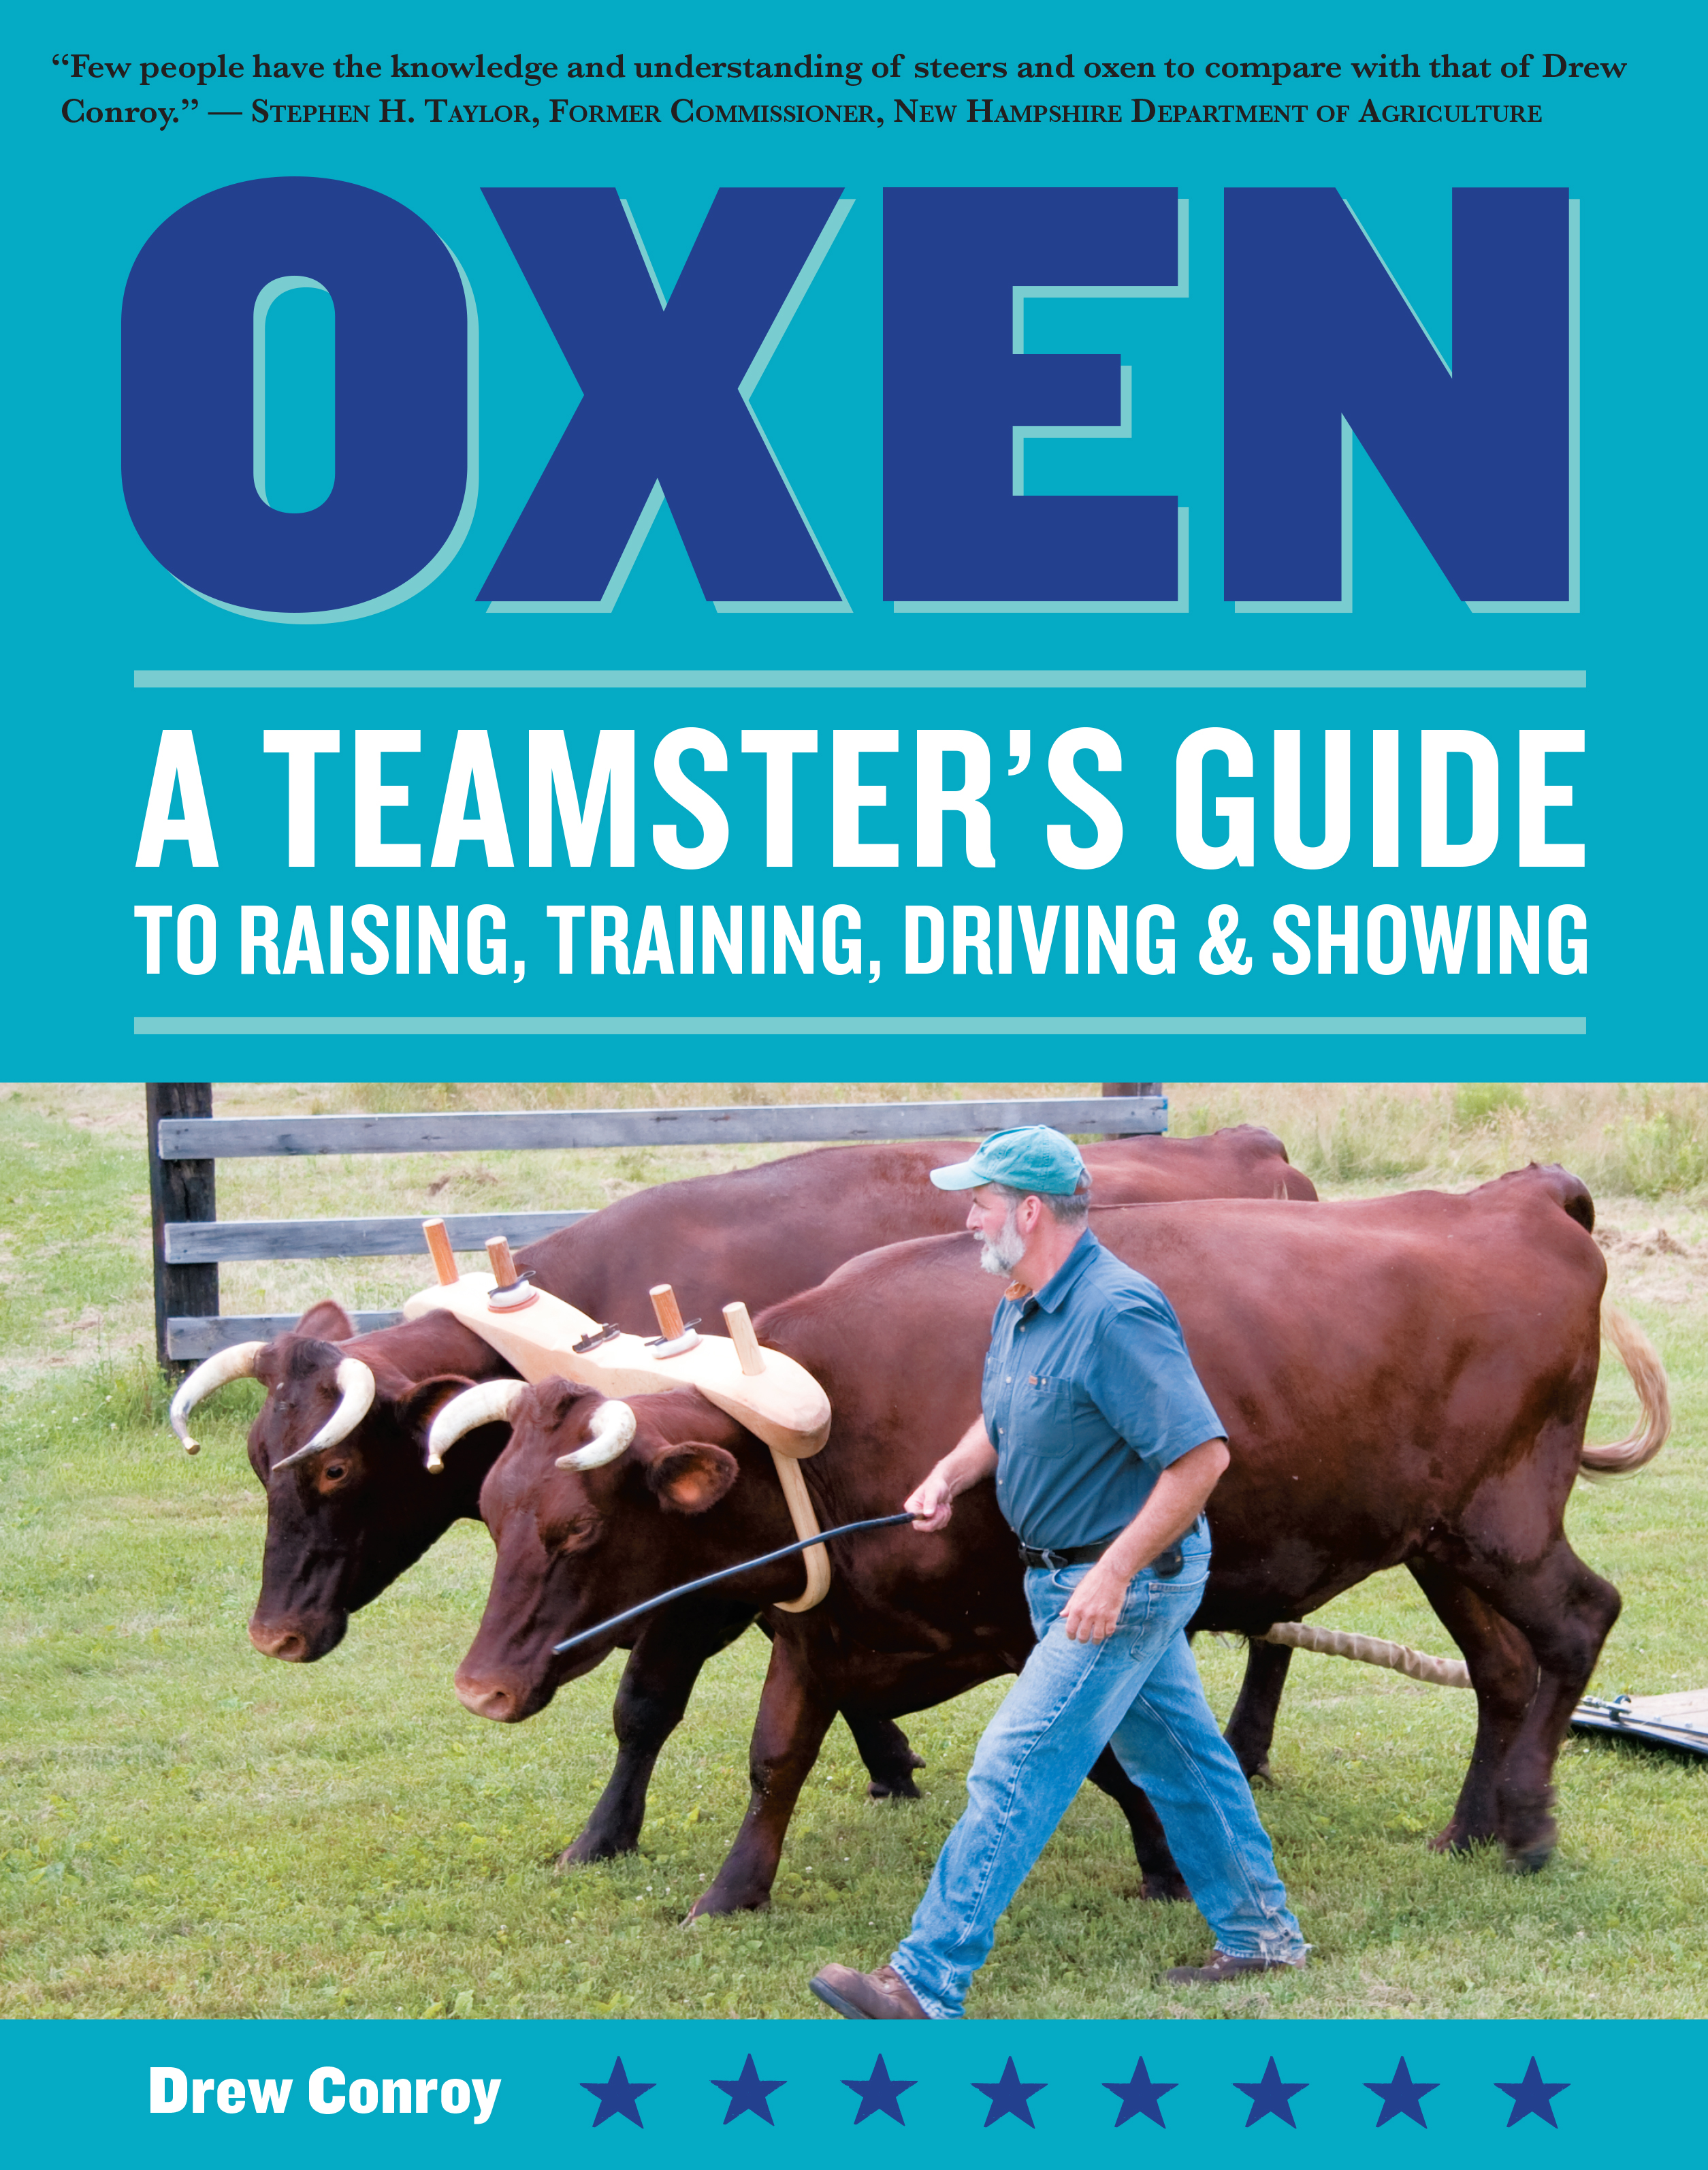 Oxen A Teamster's Guide to Raising, Training, Driving & Showing - Drew Conroy